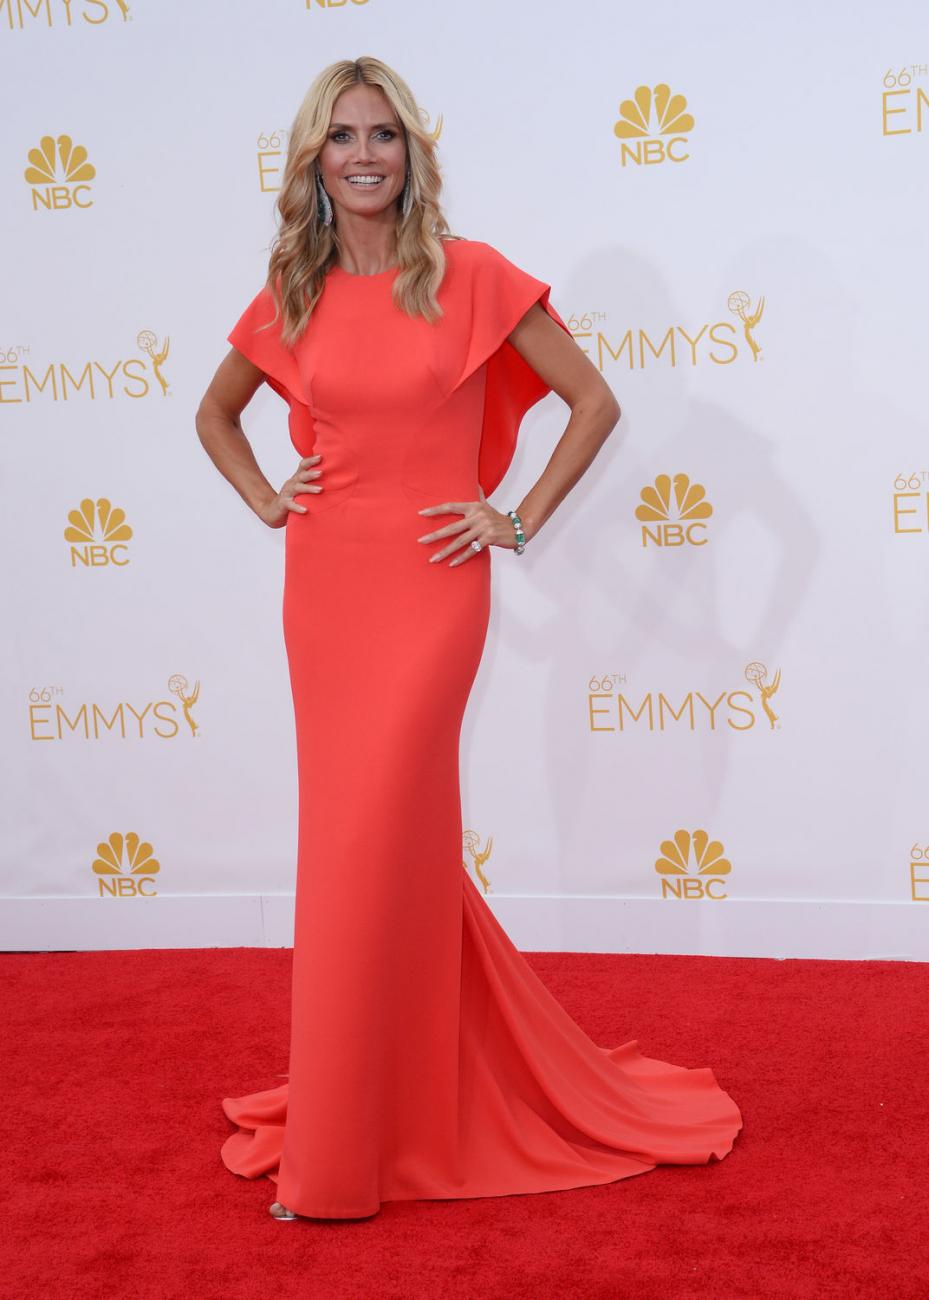 2014-Emmys-The-red-carpet_44_1